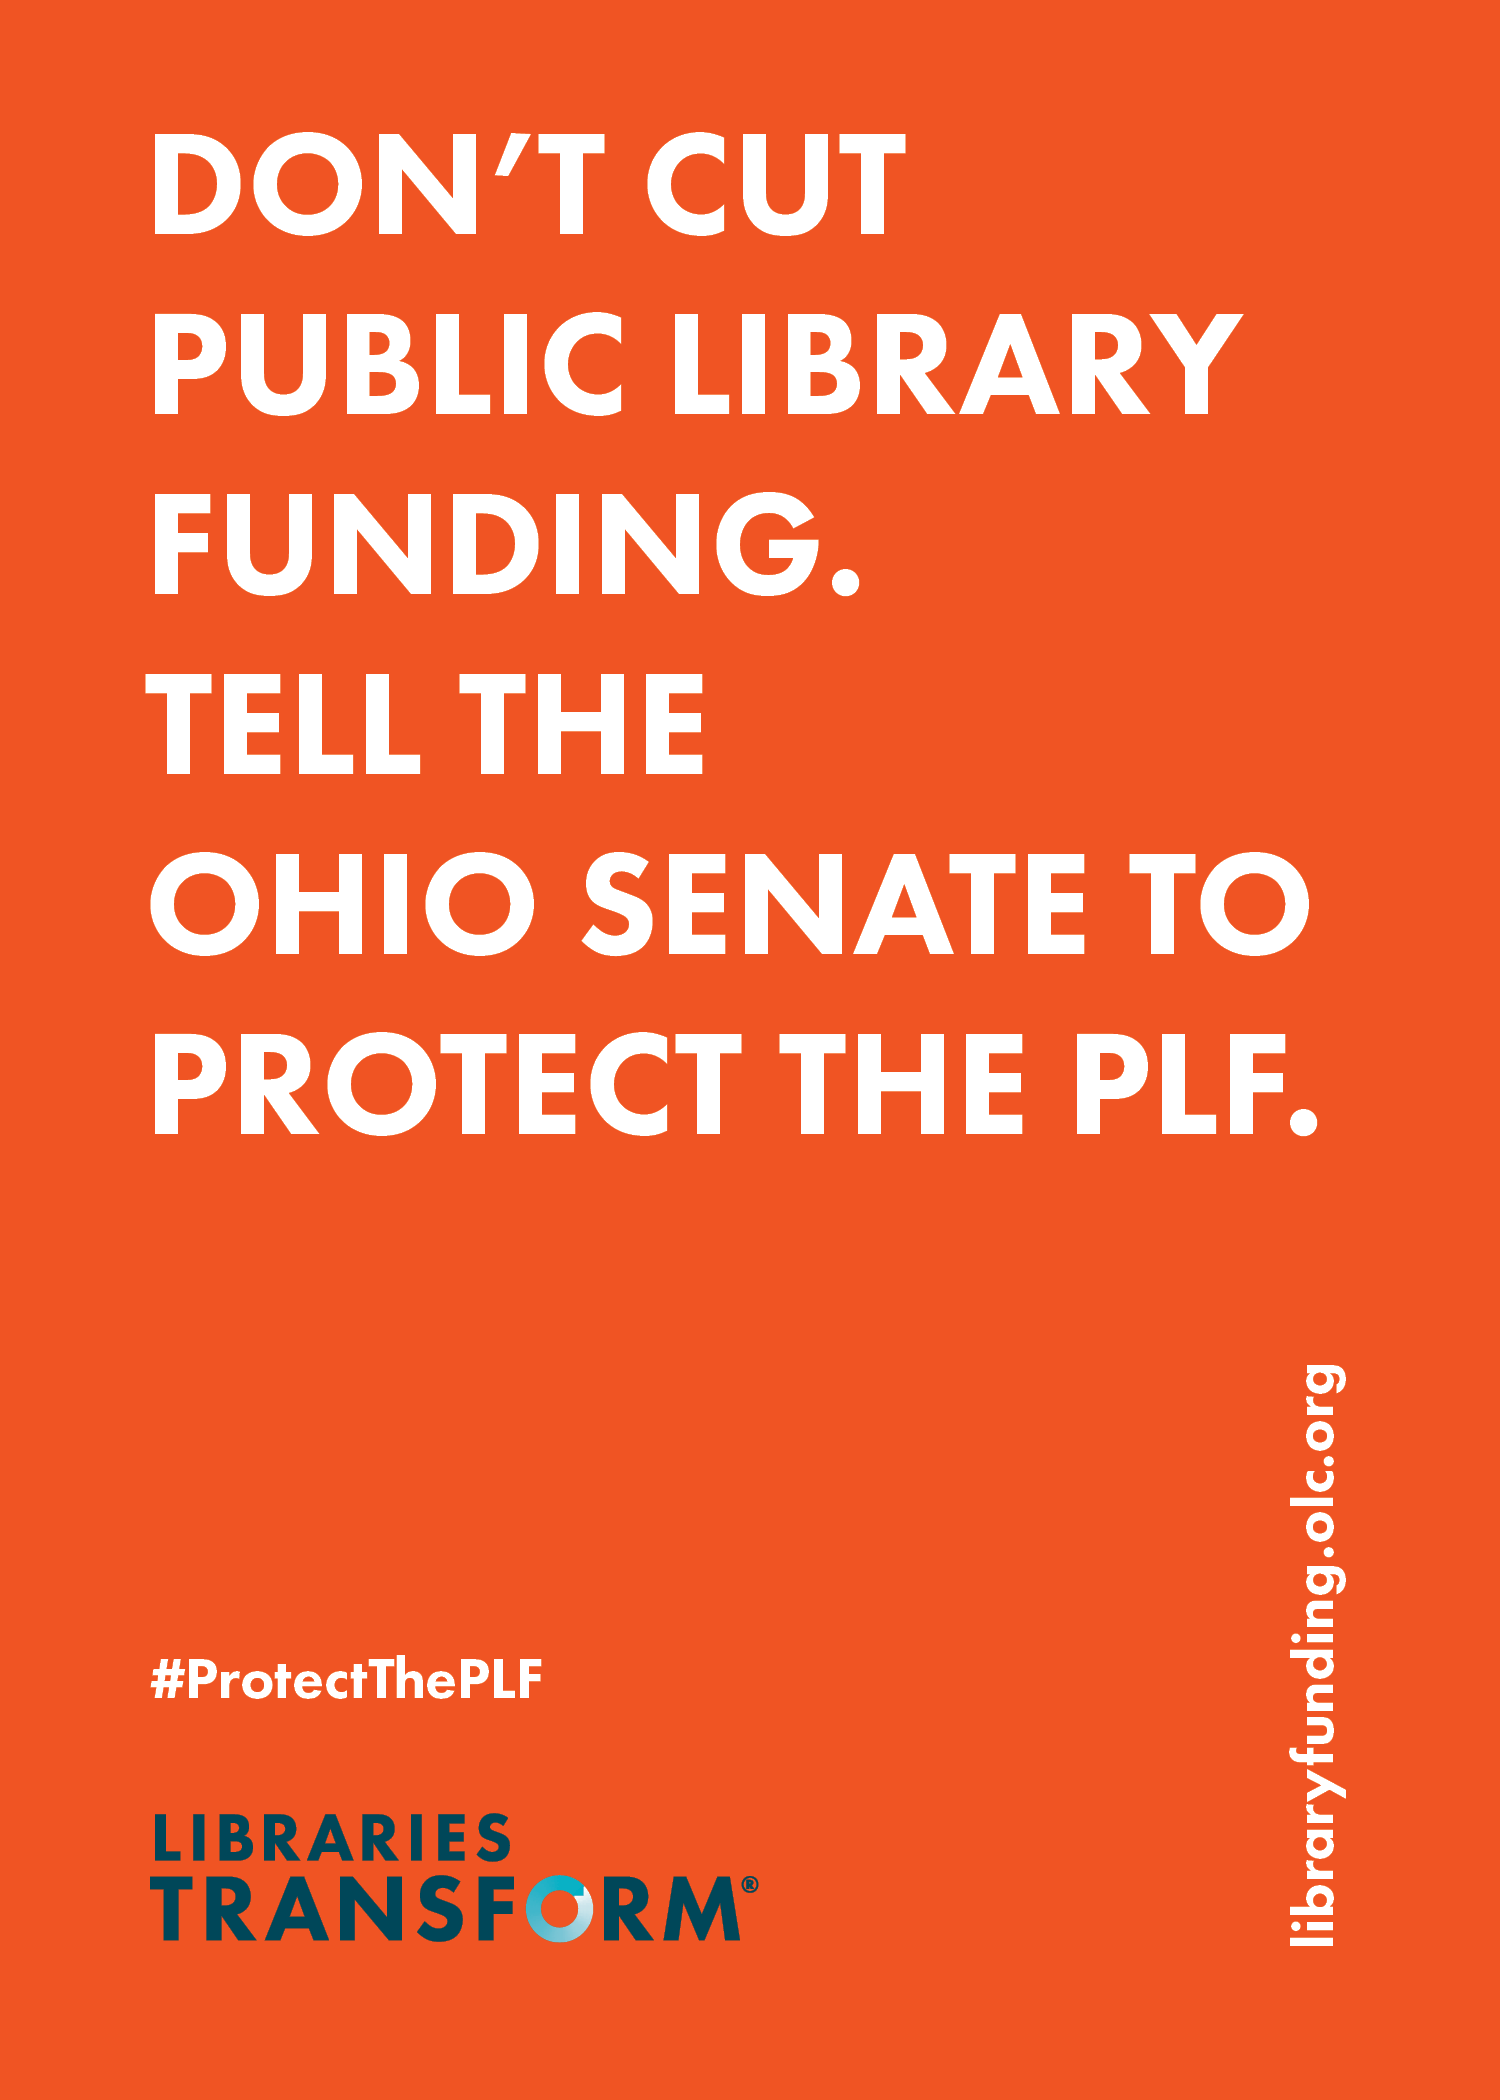 Don't Cut PLF Ohio Senate thumbnail